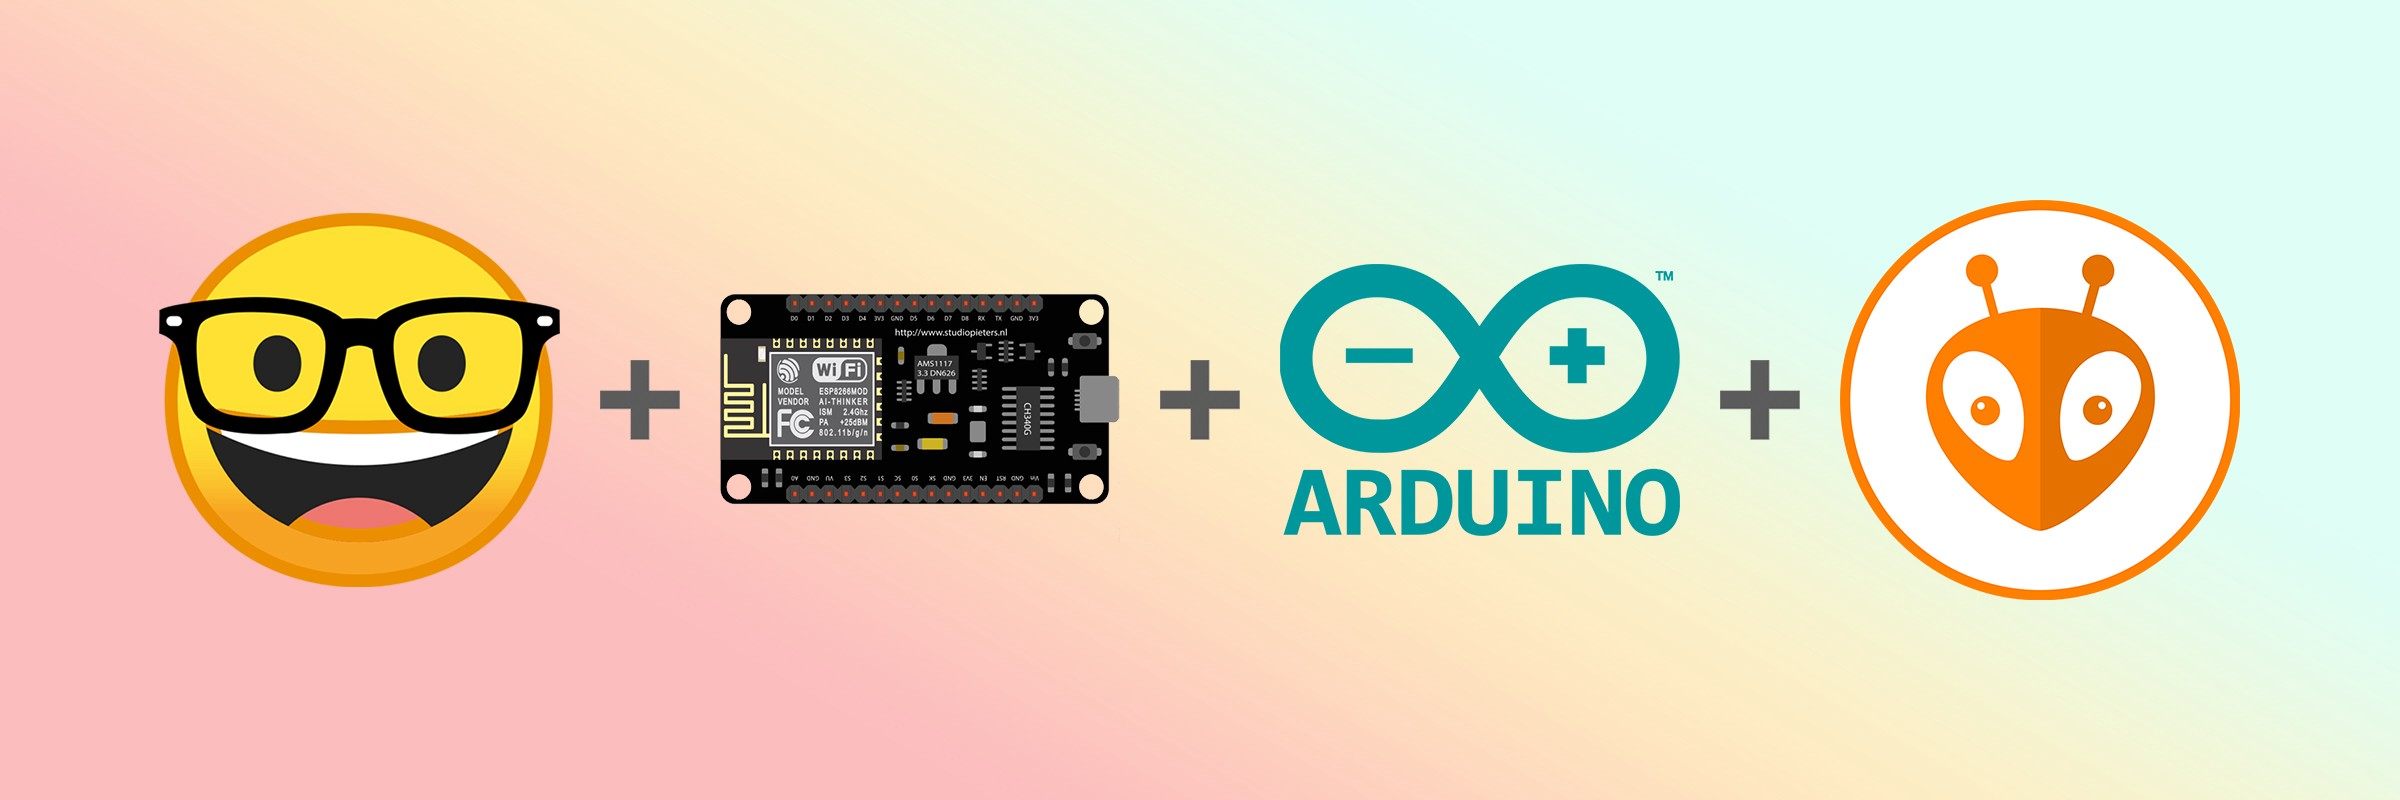 Quick start with NodeMCU v3 (ESP8266), Arduino ecosystem and